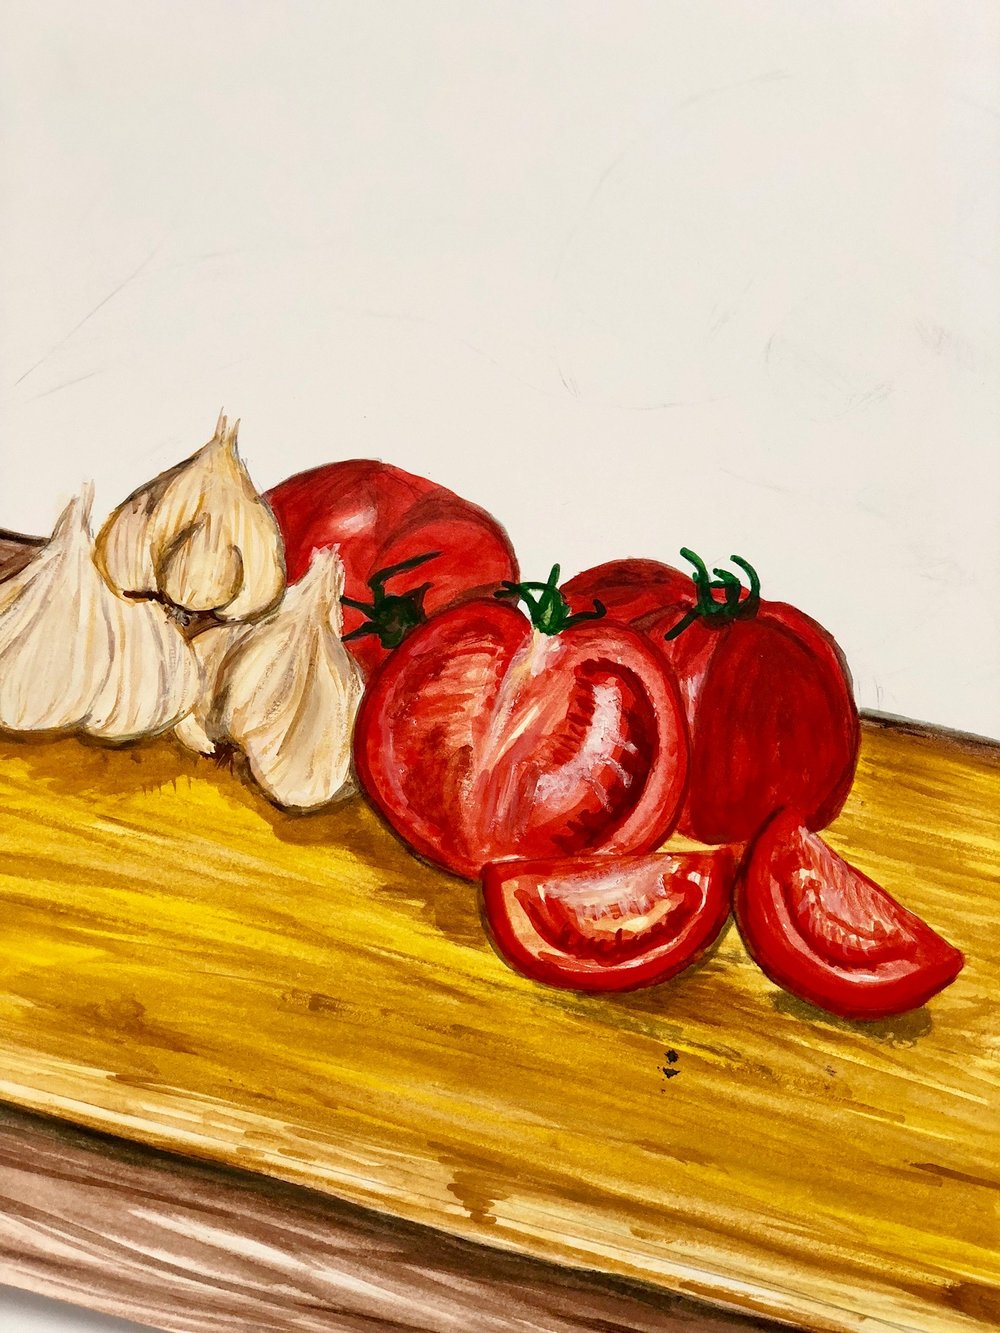 sunday sauce. - quick still life in pencils and watercolor.